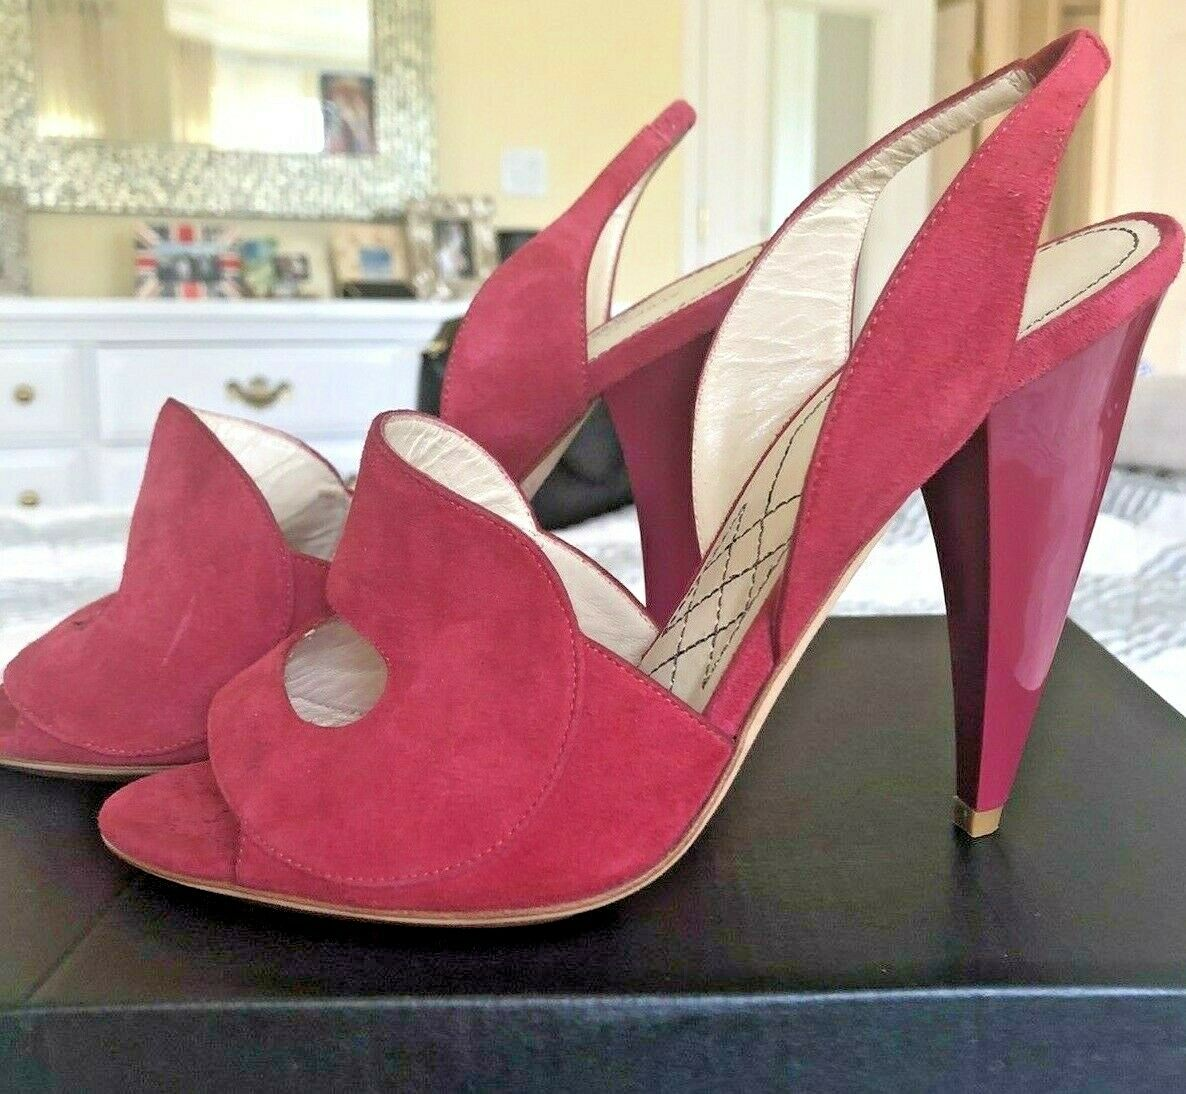 Alberta Ferretti shoes size 37 high heels soft red suede made in Italy perfect!